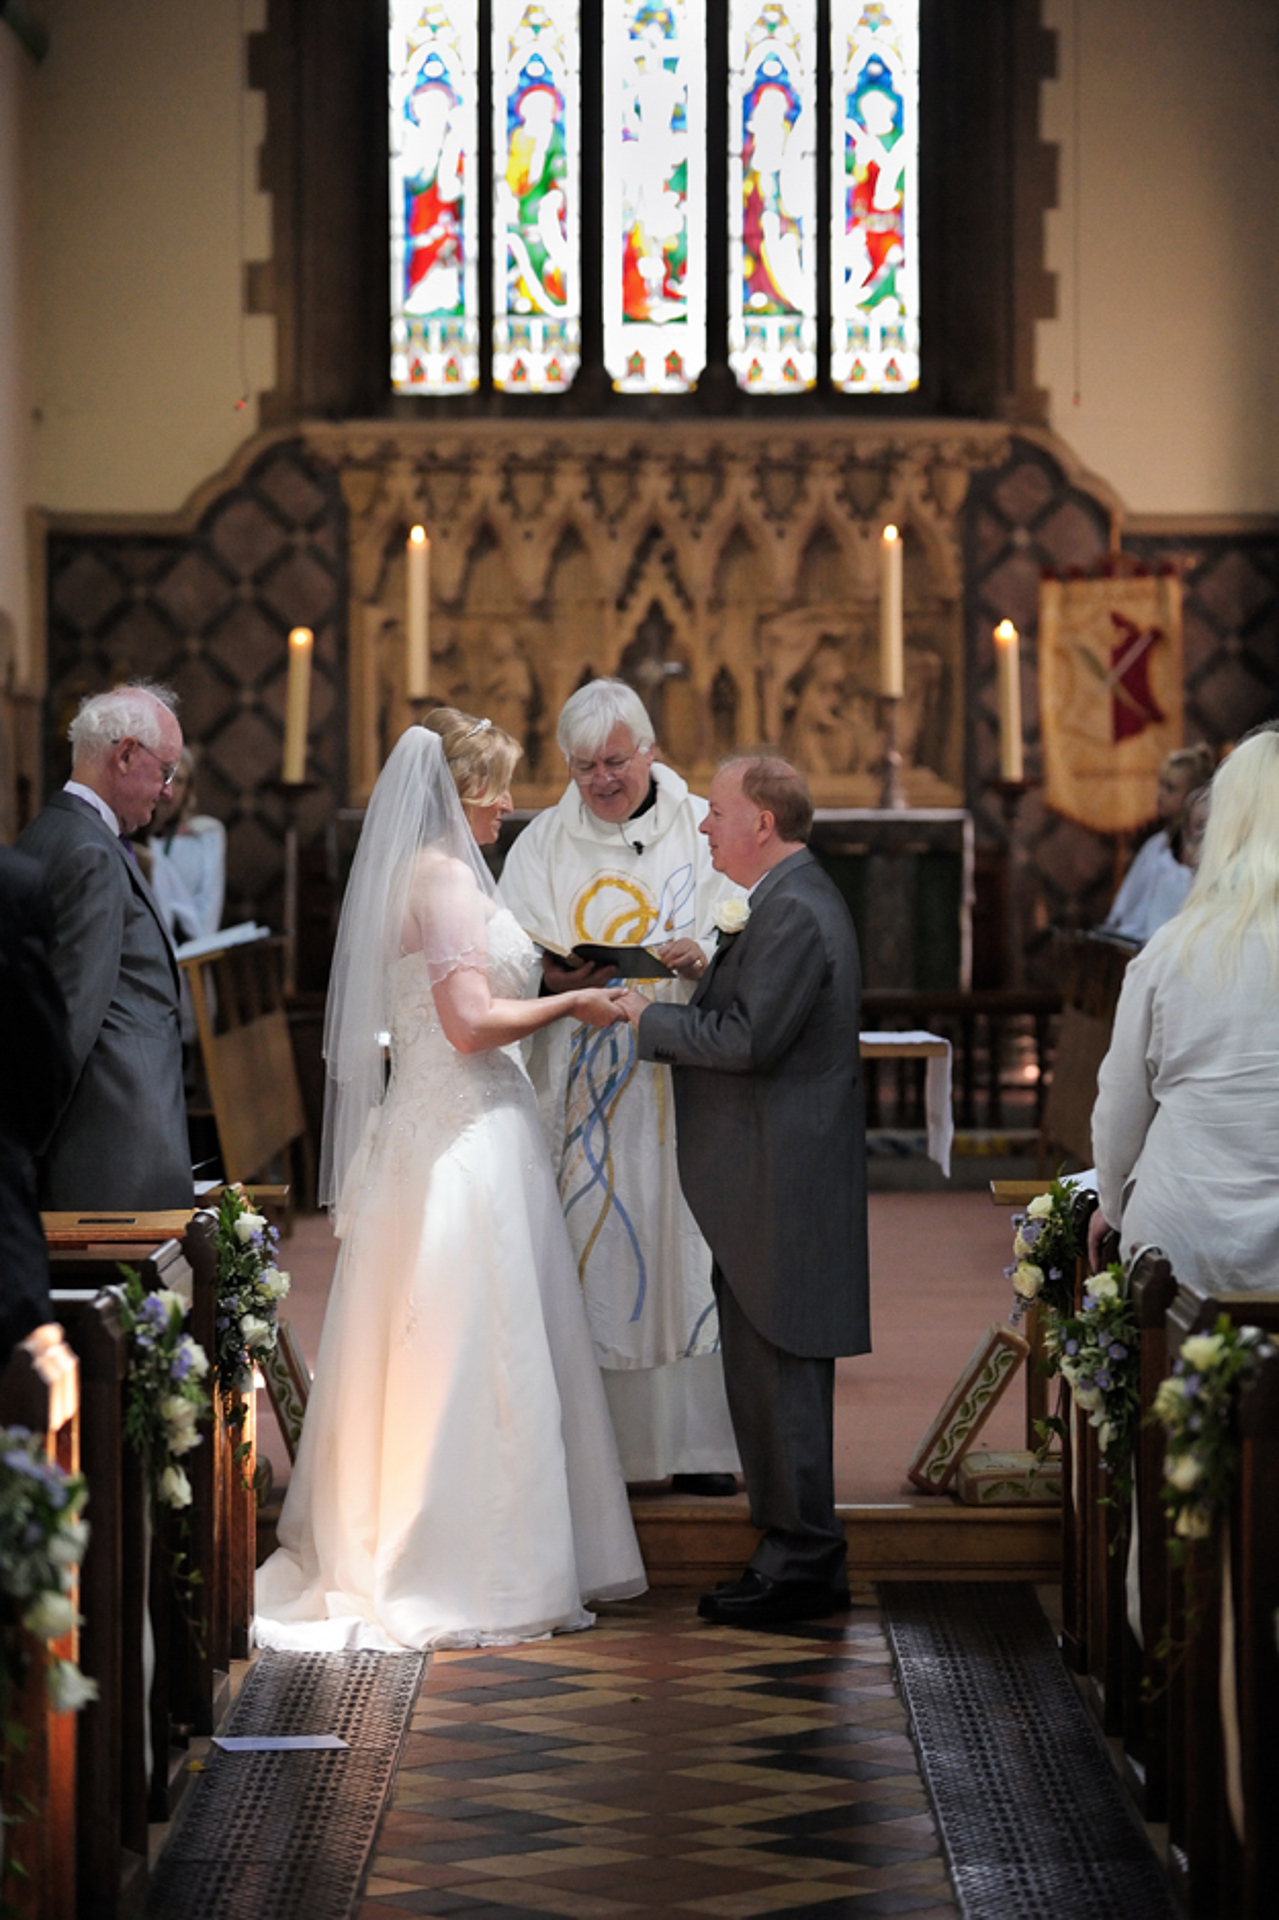 All Saints Wokingham Wedding photography_03.JPG